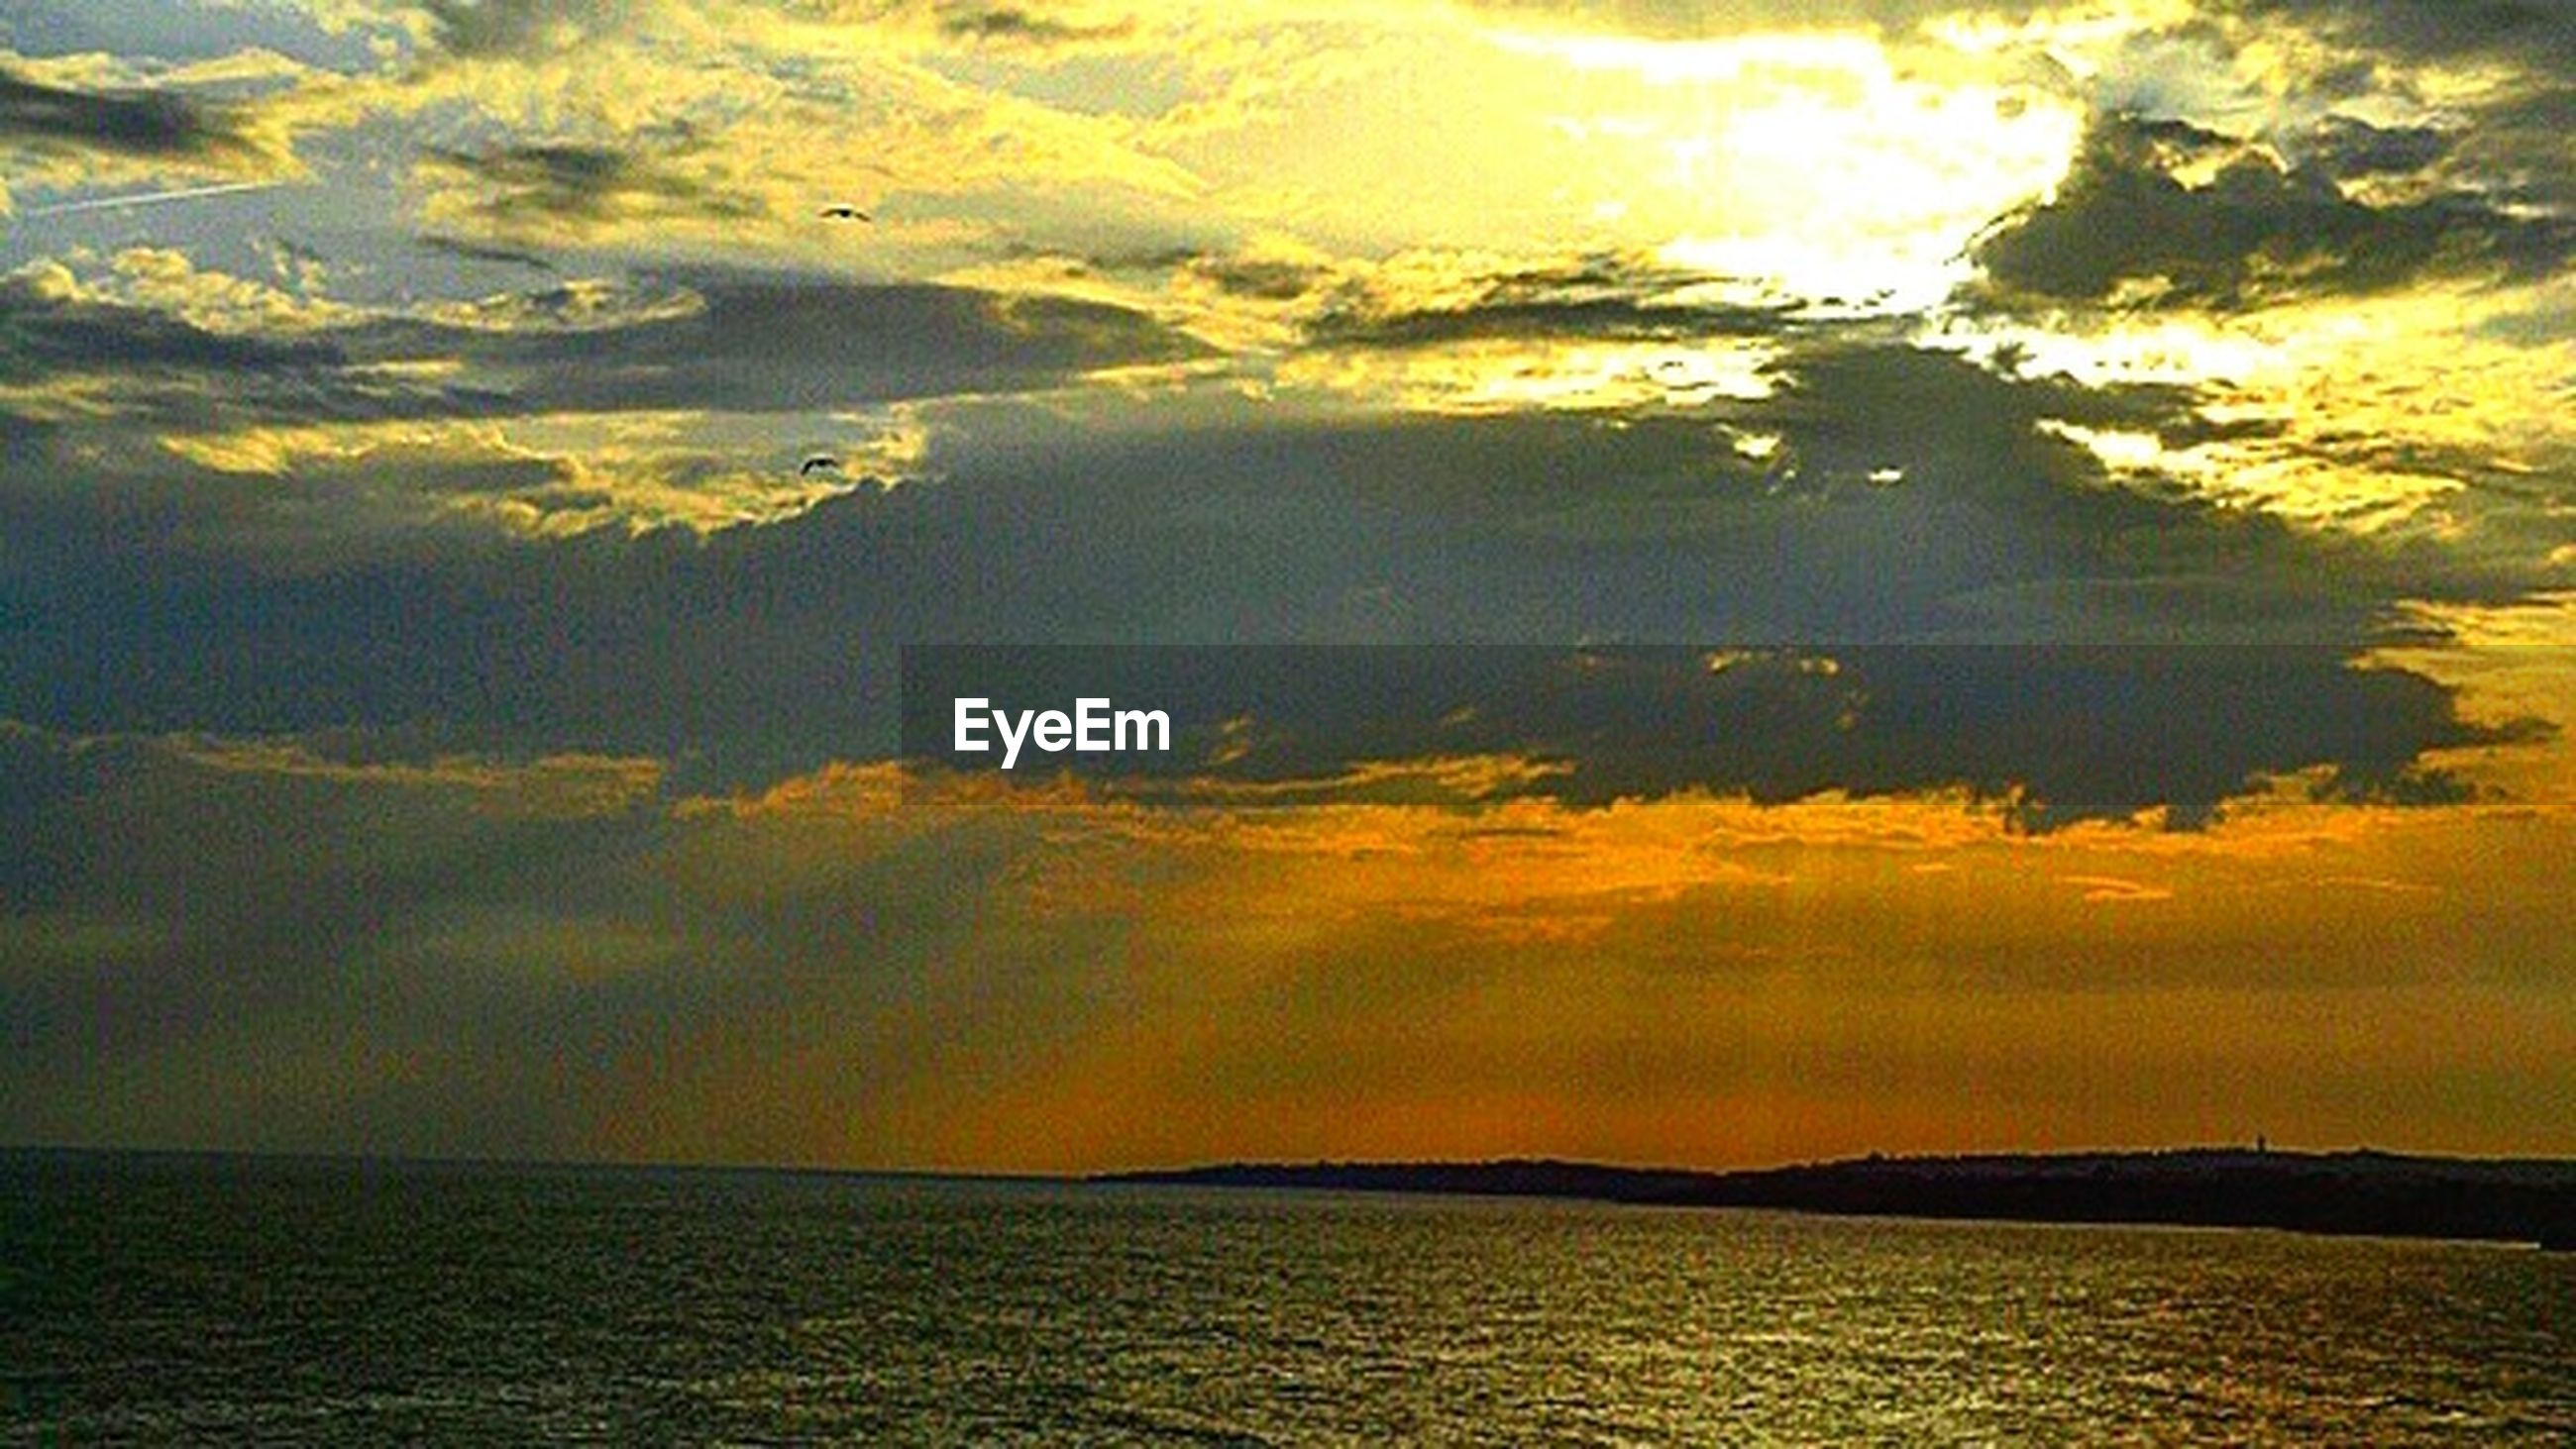 sunset, scenics, tranquil scene, beauty in nature, tranquility, water, sea, sky, waterfront, idyllic, nature, cloud - sky, horizon over water, orange color, cloud, dramatic sky, outdoors, cloudy, no people, majestic